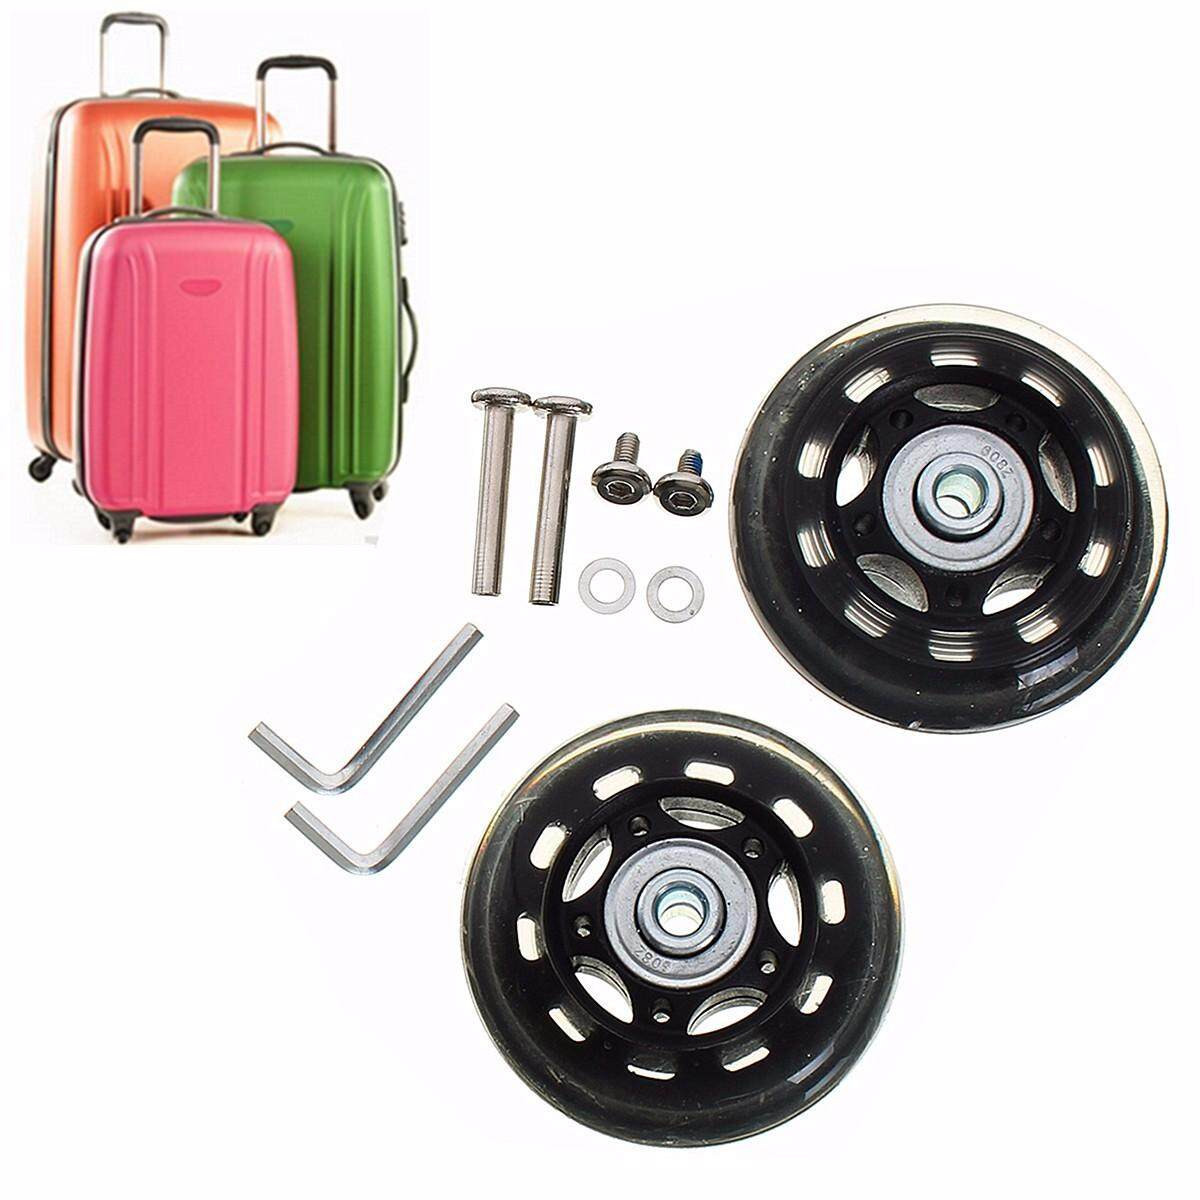 3eb90cc83d05 Luggage Wheel Replacement Page 4 - BigGo Price Search Engine